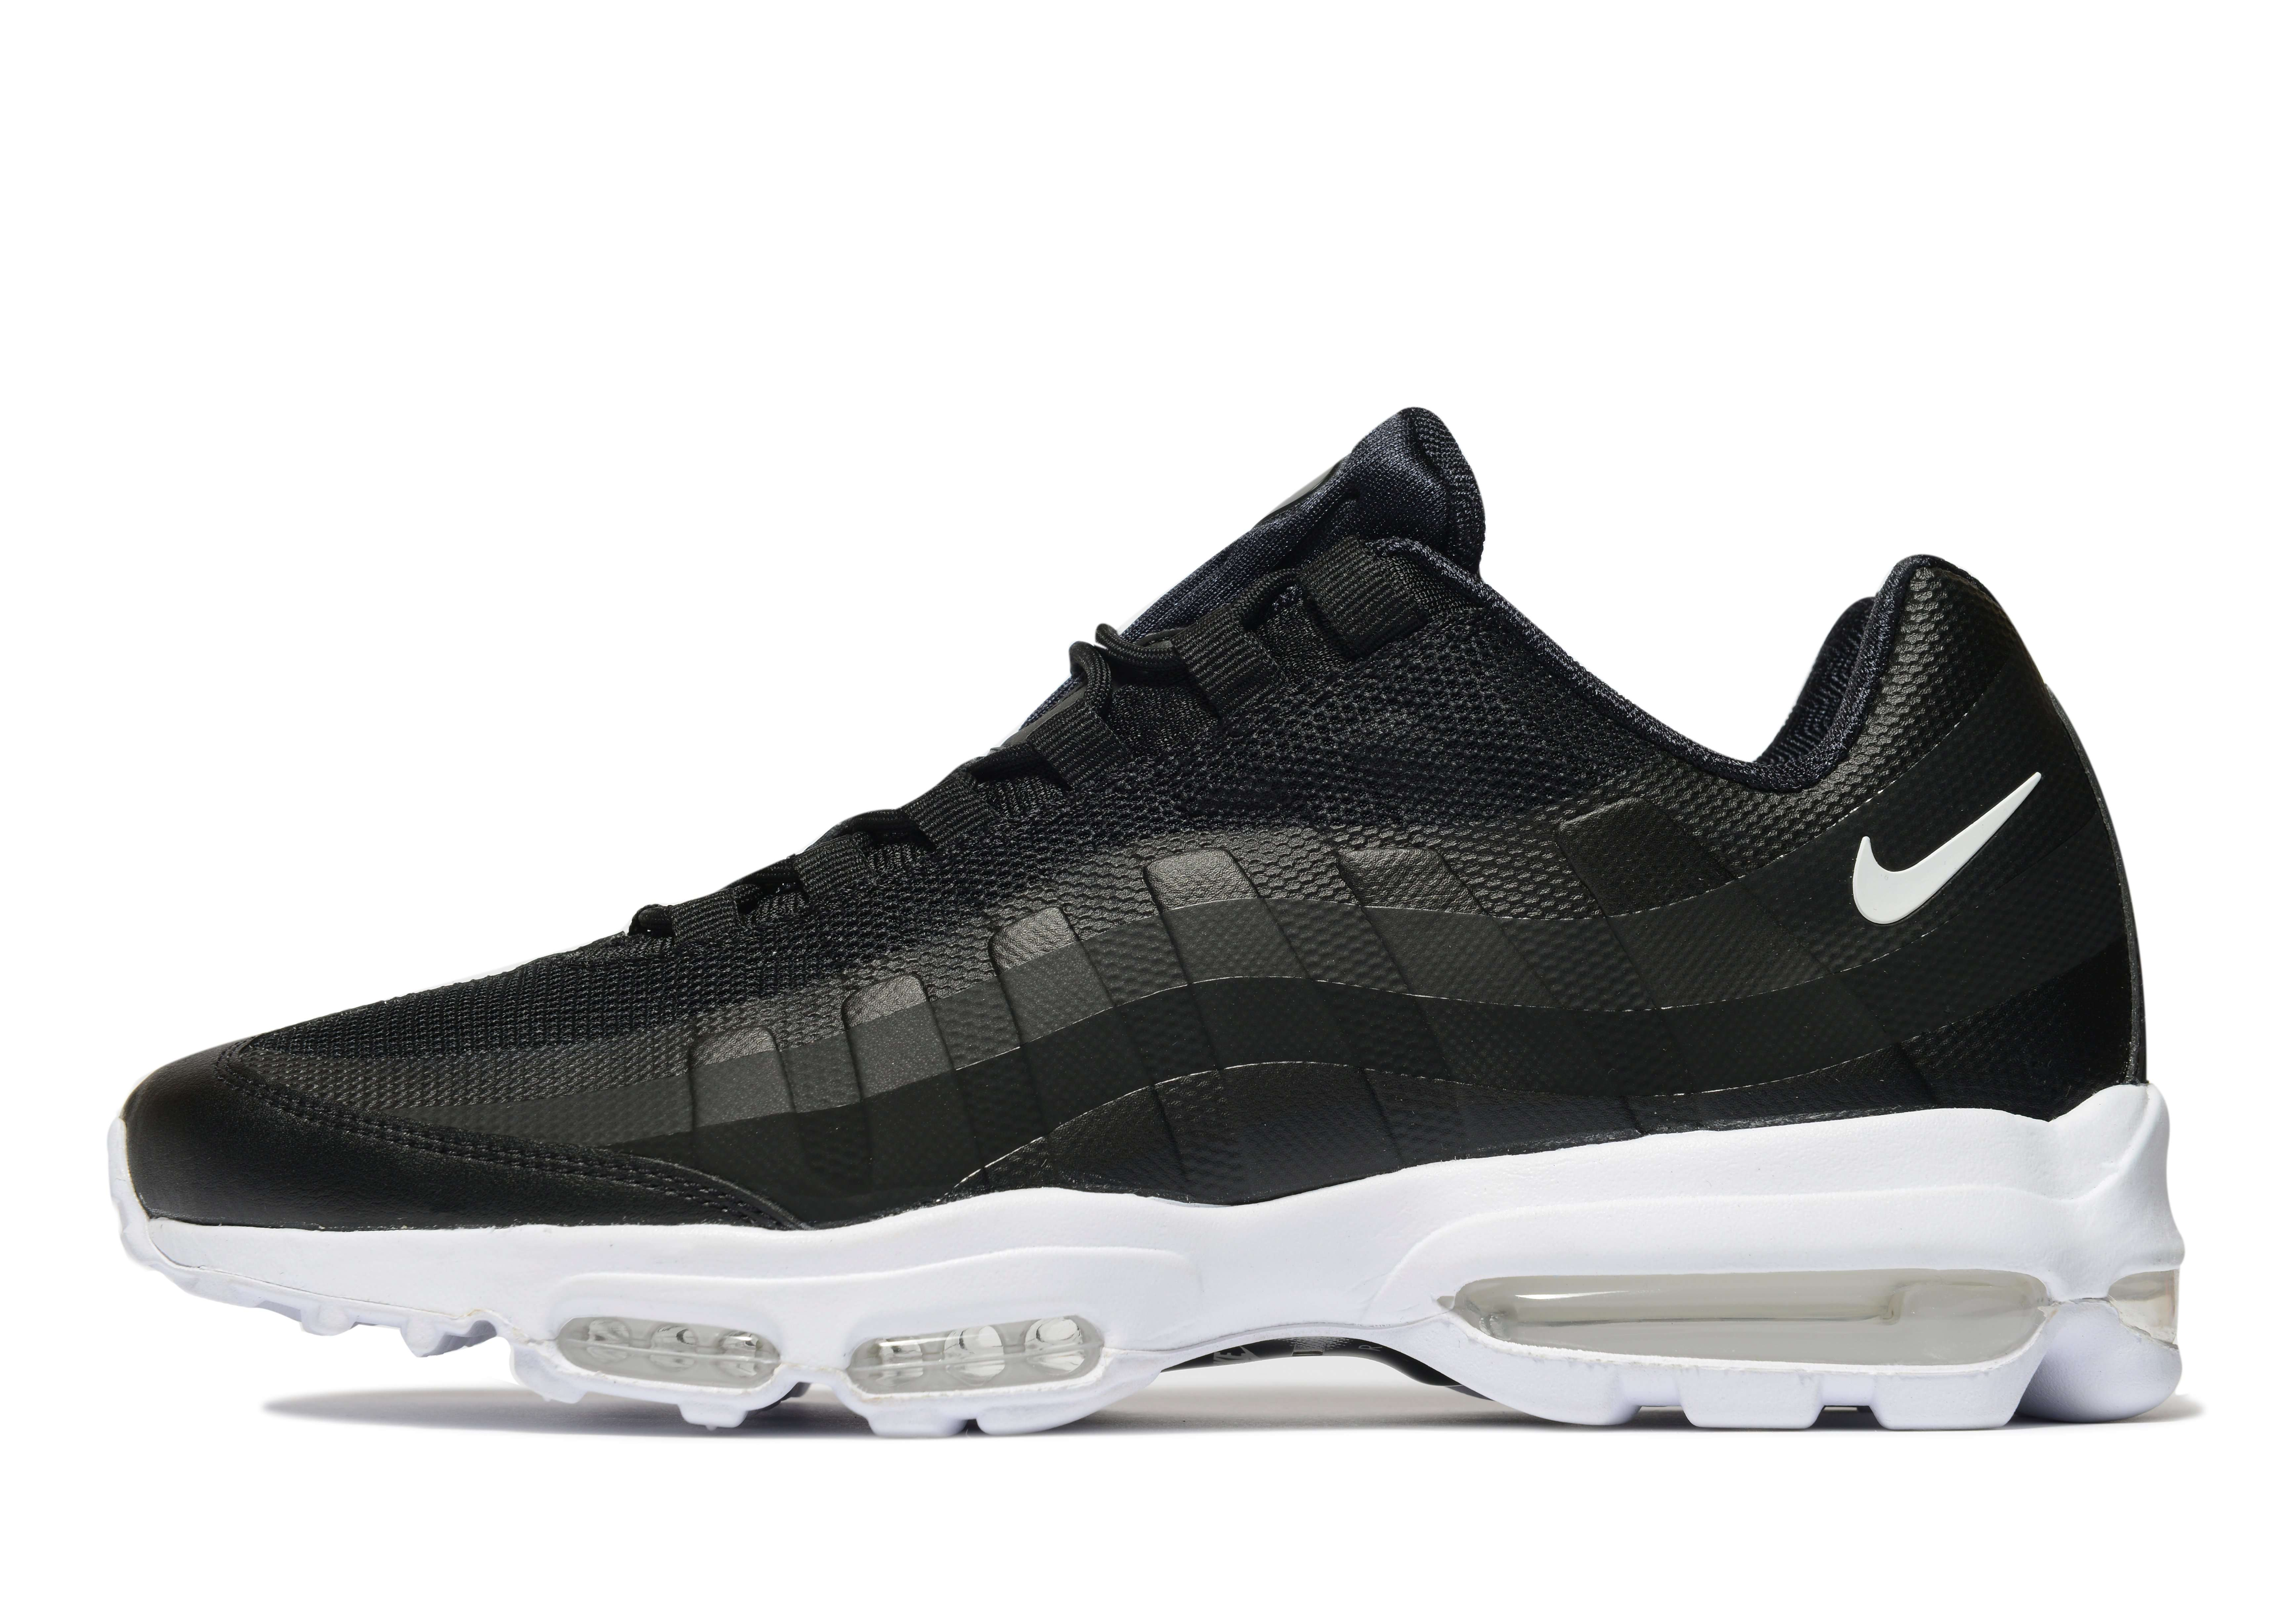 pretty nice 336b2 534f9 nike air max 95 ultra